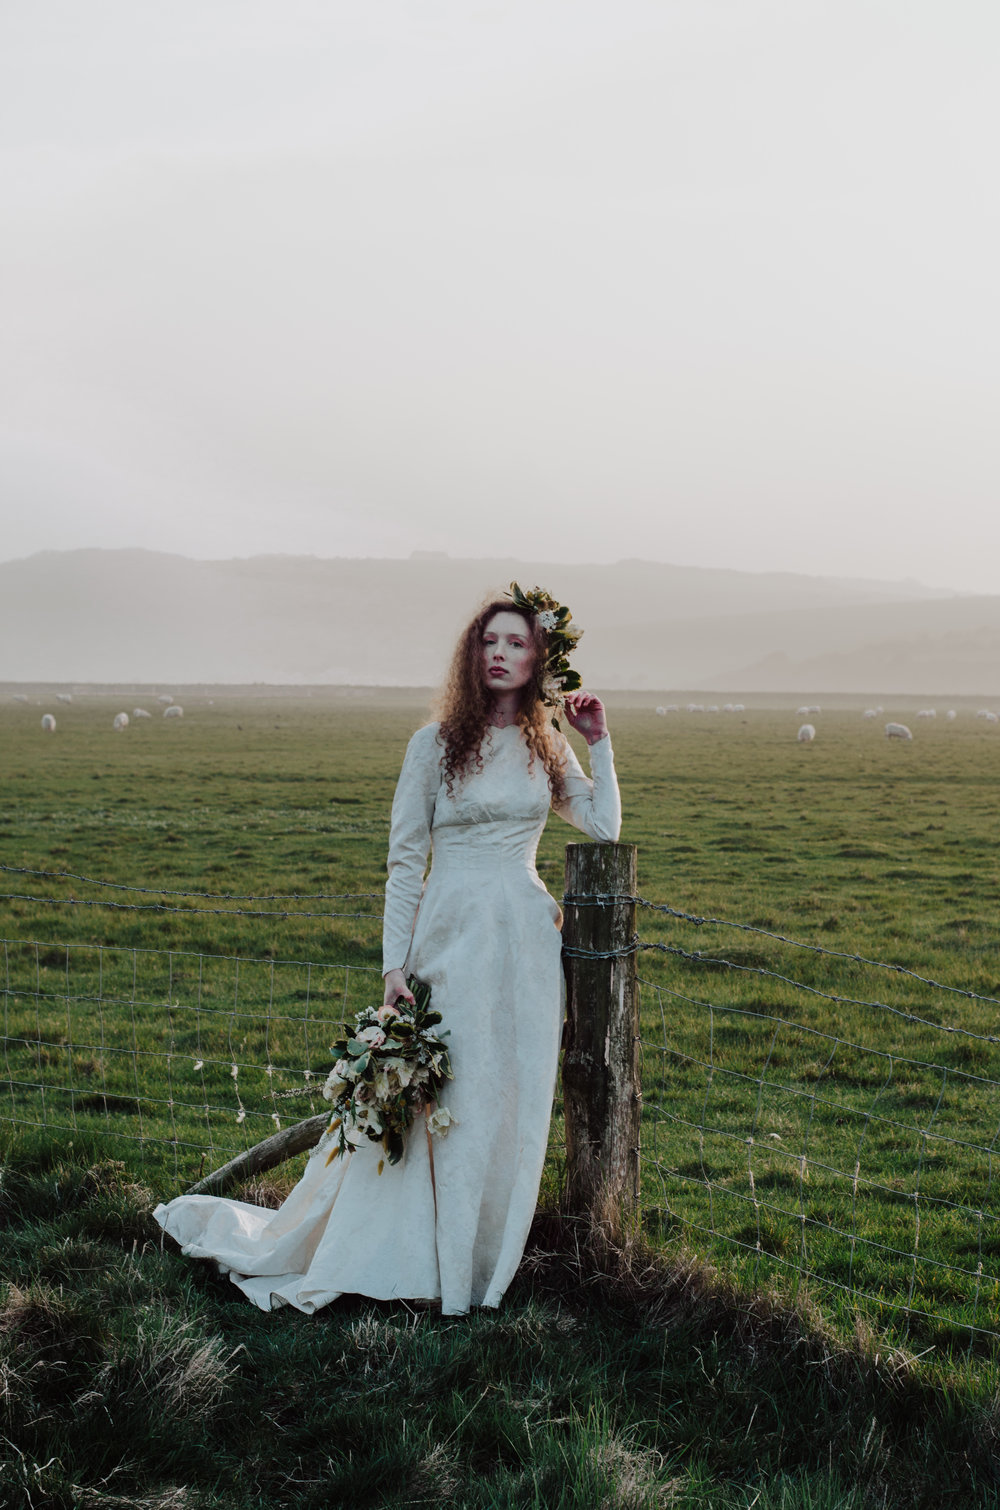 Bridal - Cuckmere Haven 2018 - Aiste Saulyte Photography-43.jpg